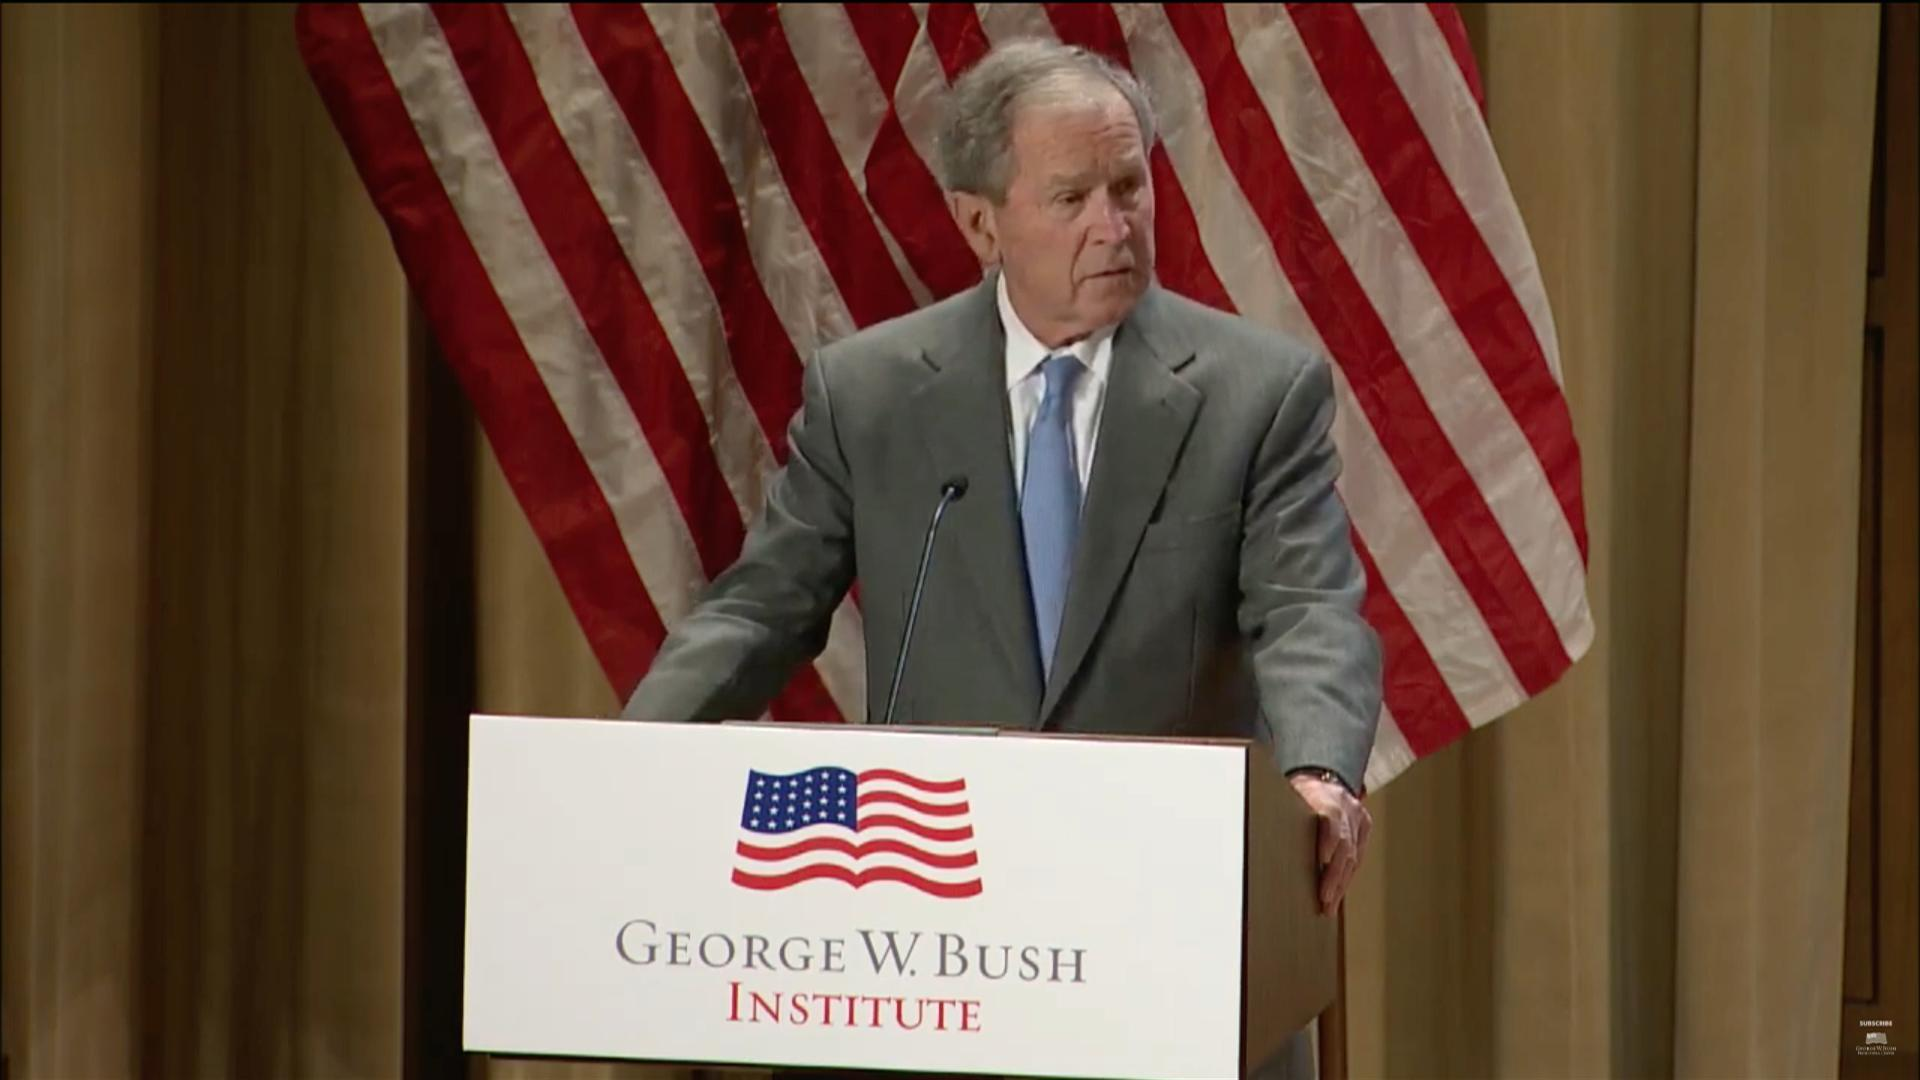 George W. Bush calls immigration 'a blessing and a strength' at naturalization ceremony